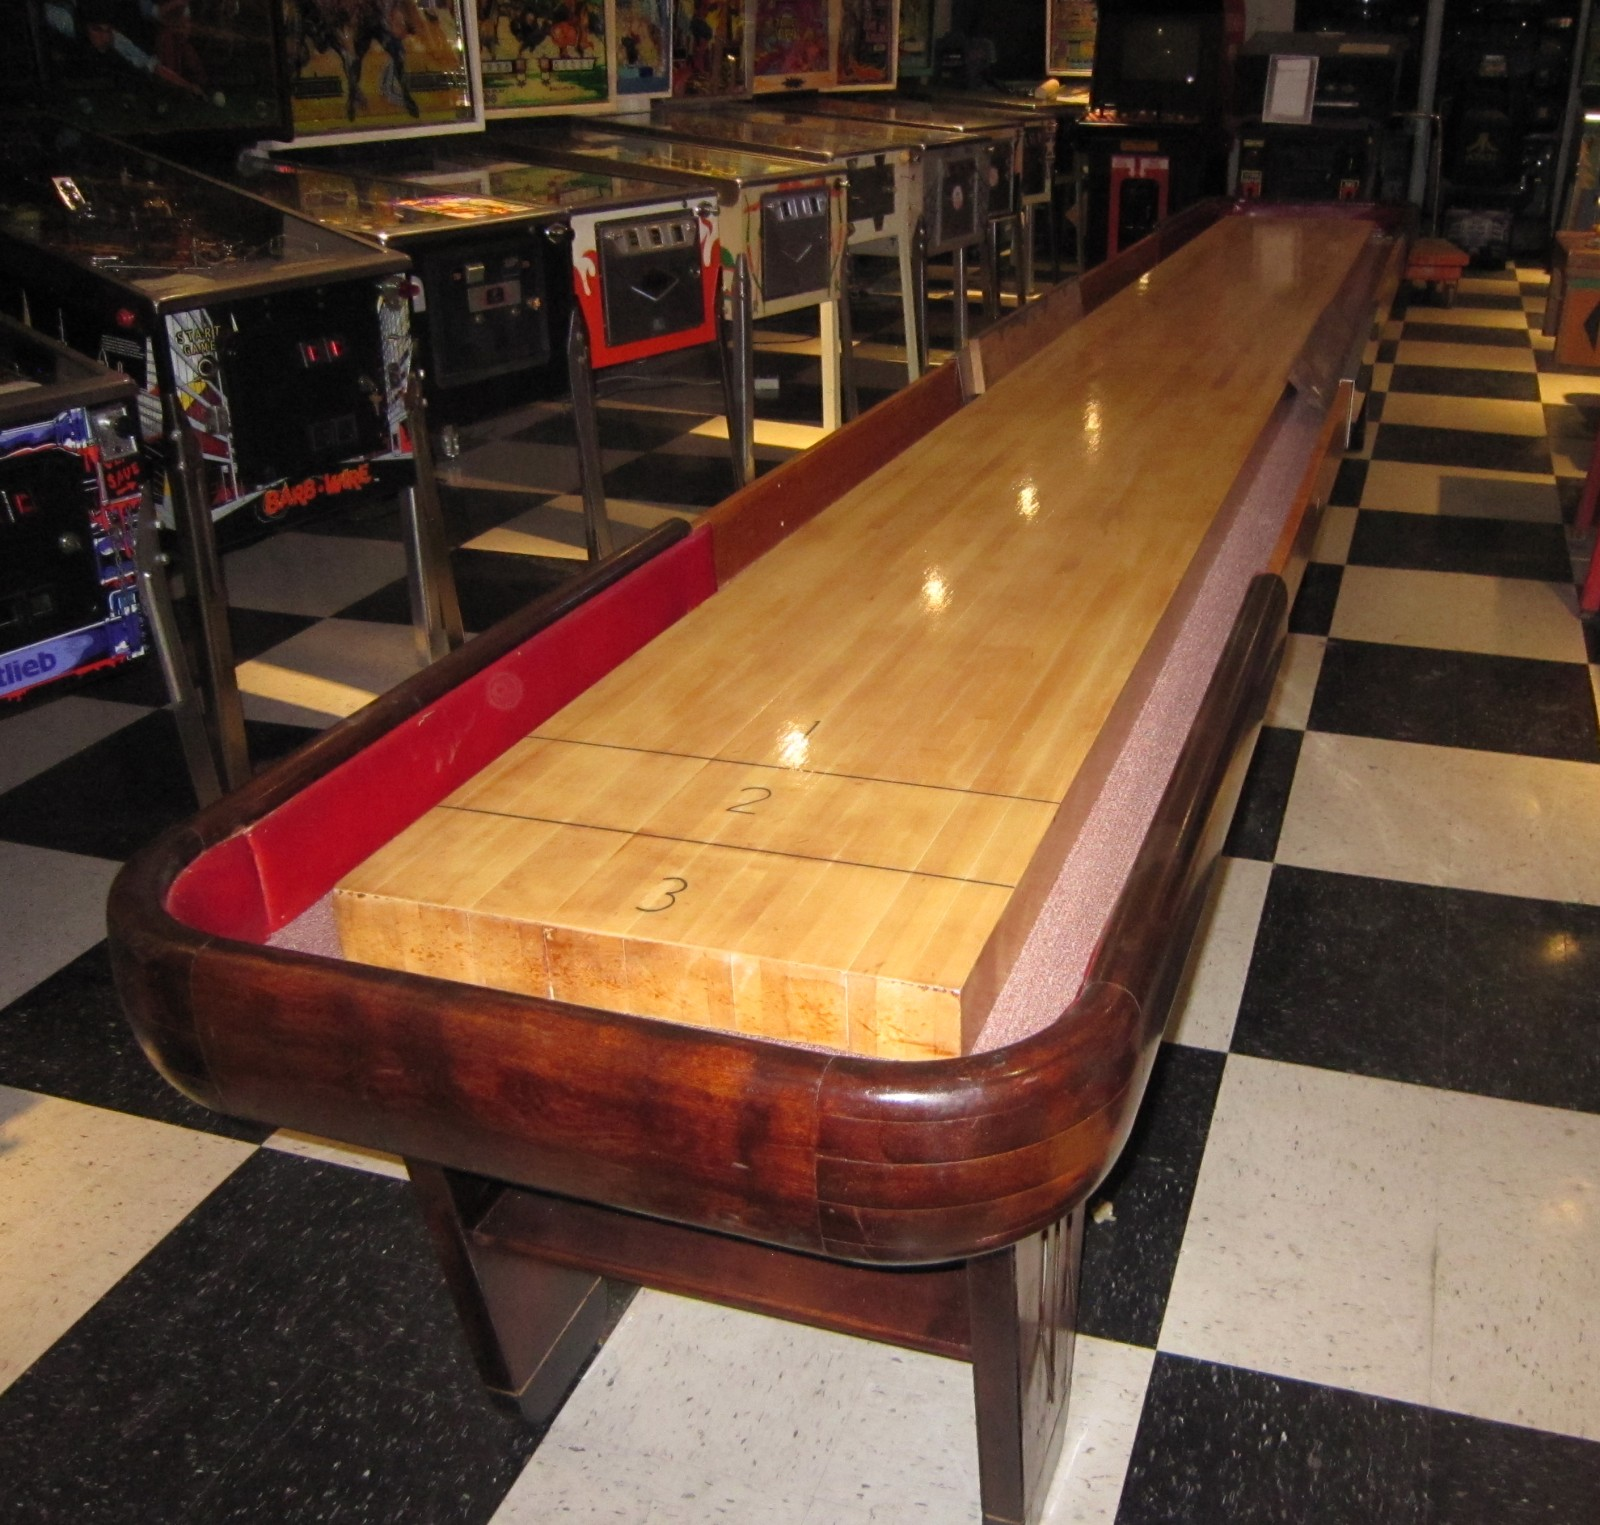 18 Foot Rock Ola 1949 Antique Shuffleboard